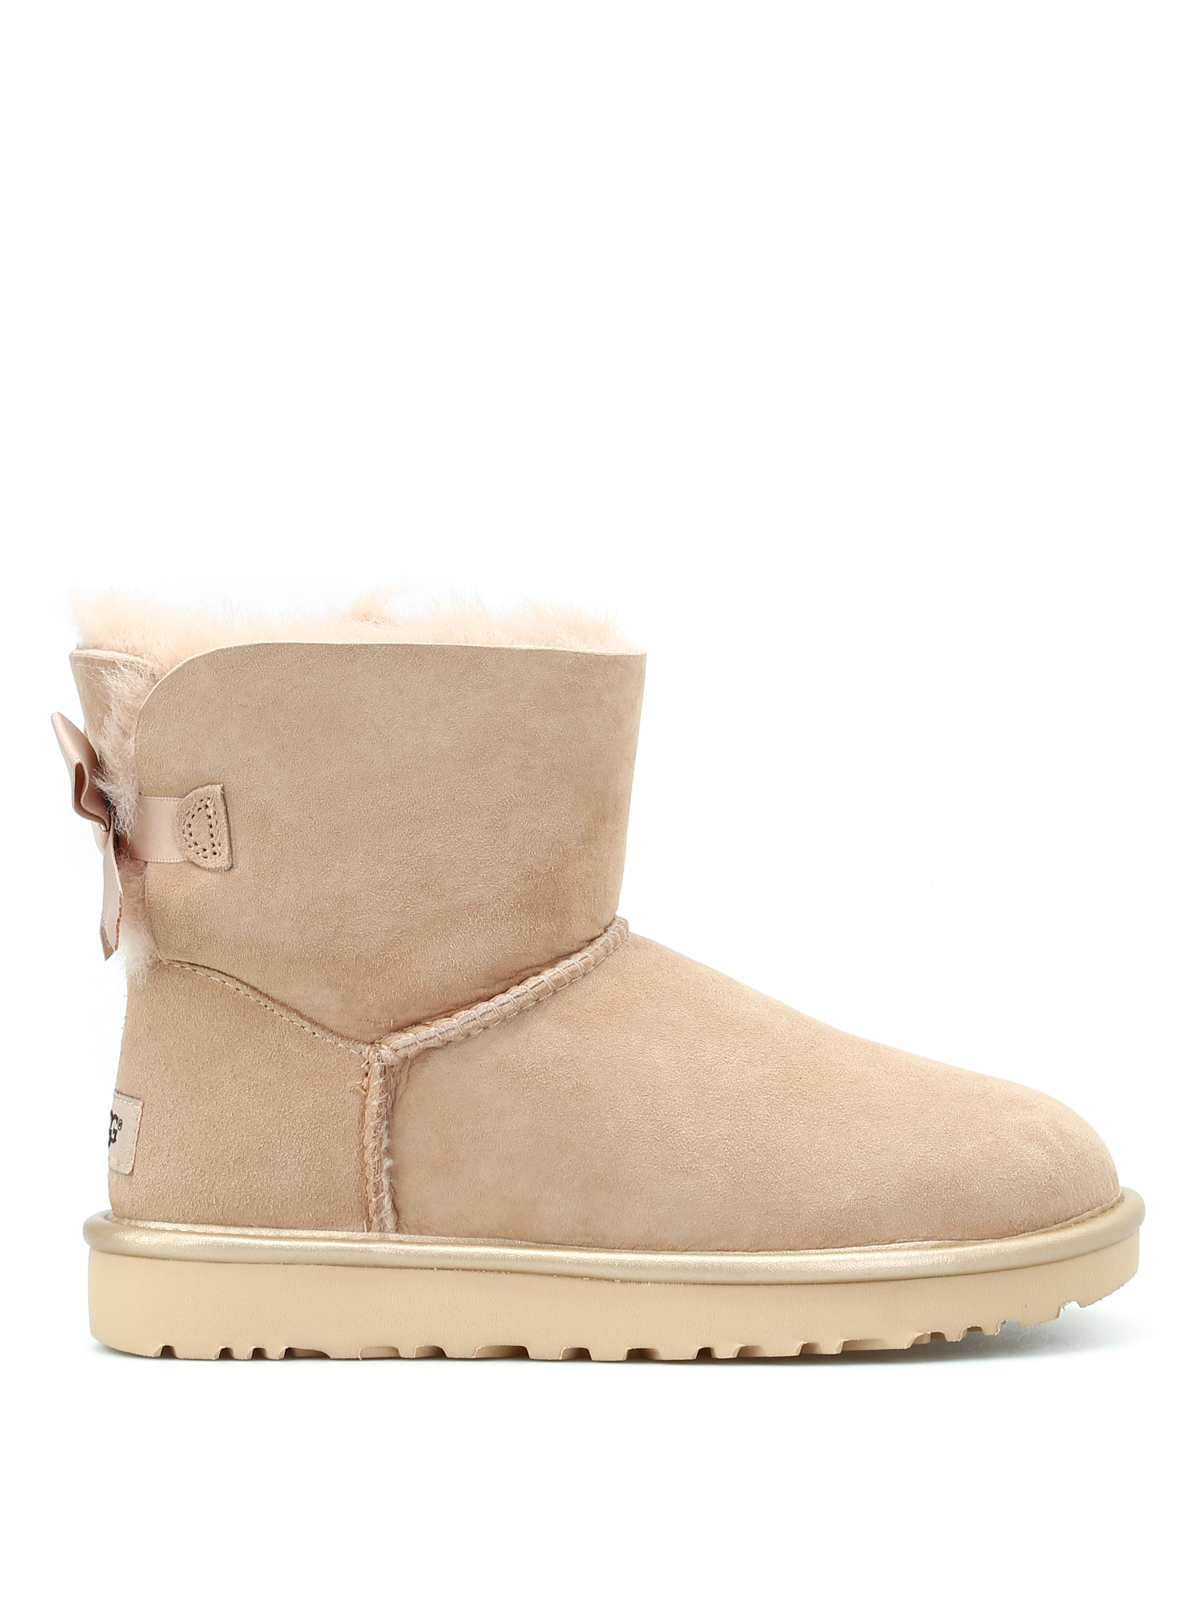 28989ff26f1 Ugg - Mini Bailey Bow II soft booties - ankle boots - 1019032WDRI